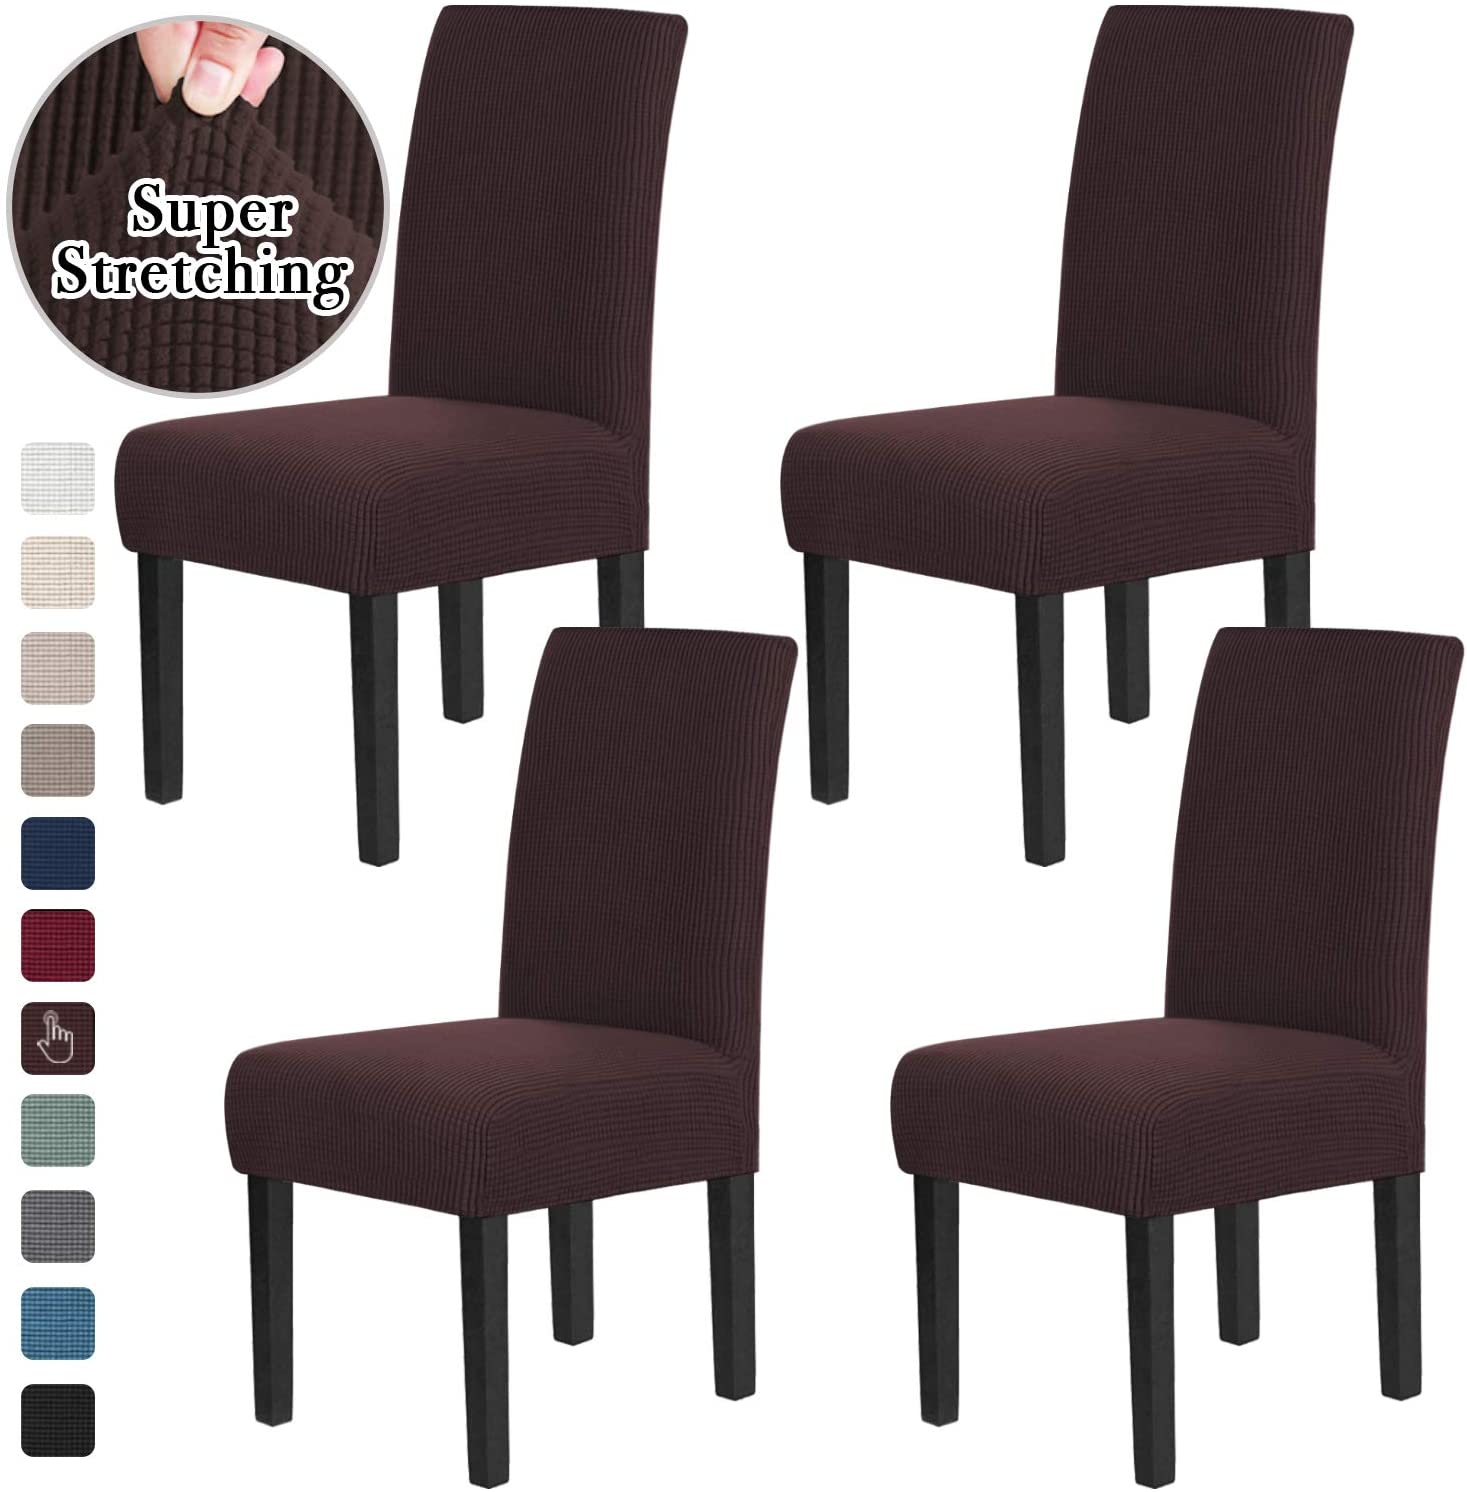 Chair Covers for Dining Room Stretch Dining Chair Covers Chair Cushions for Dining Chairs Super Fit Dining Chair Protector Removable Washable Chair Covers Set of 4, Brown